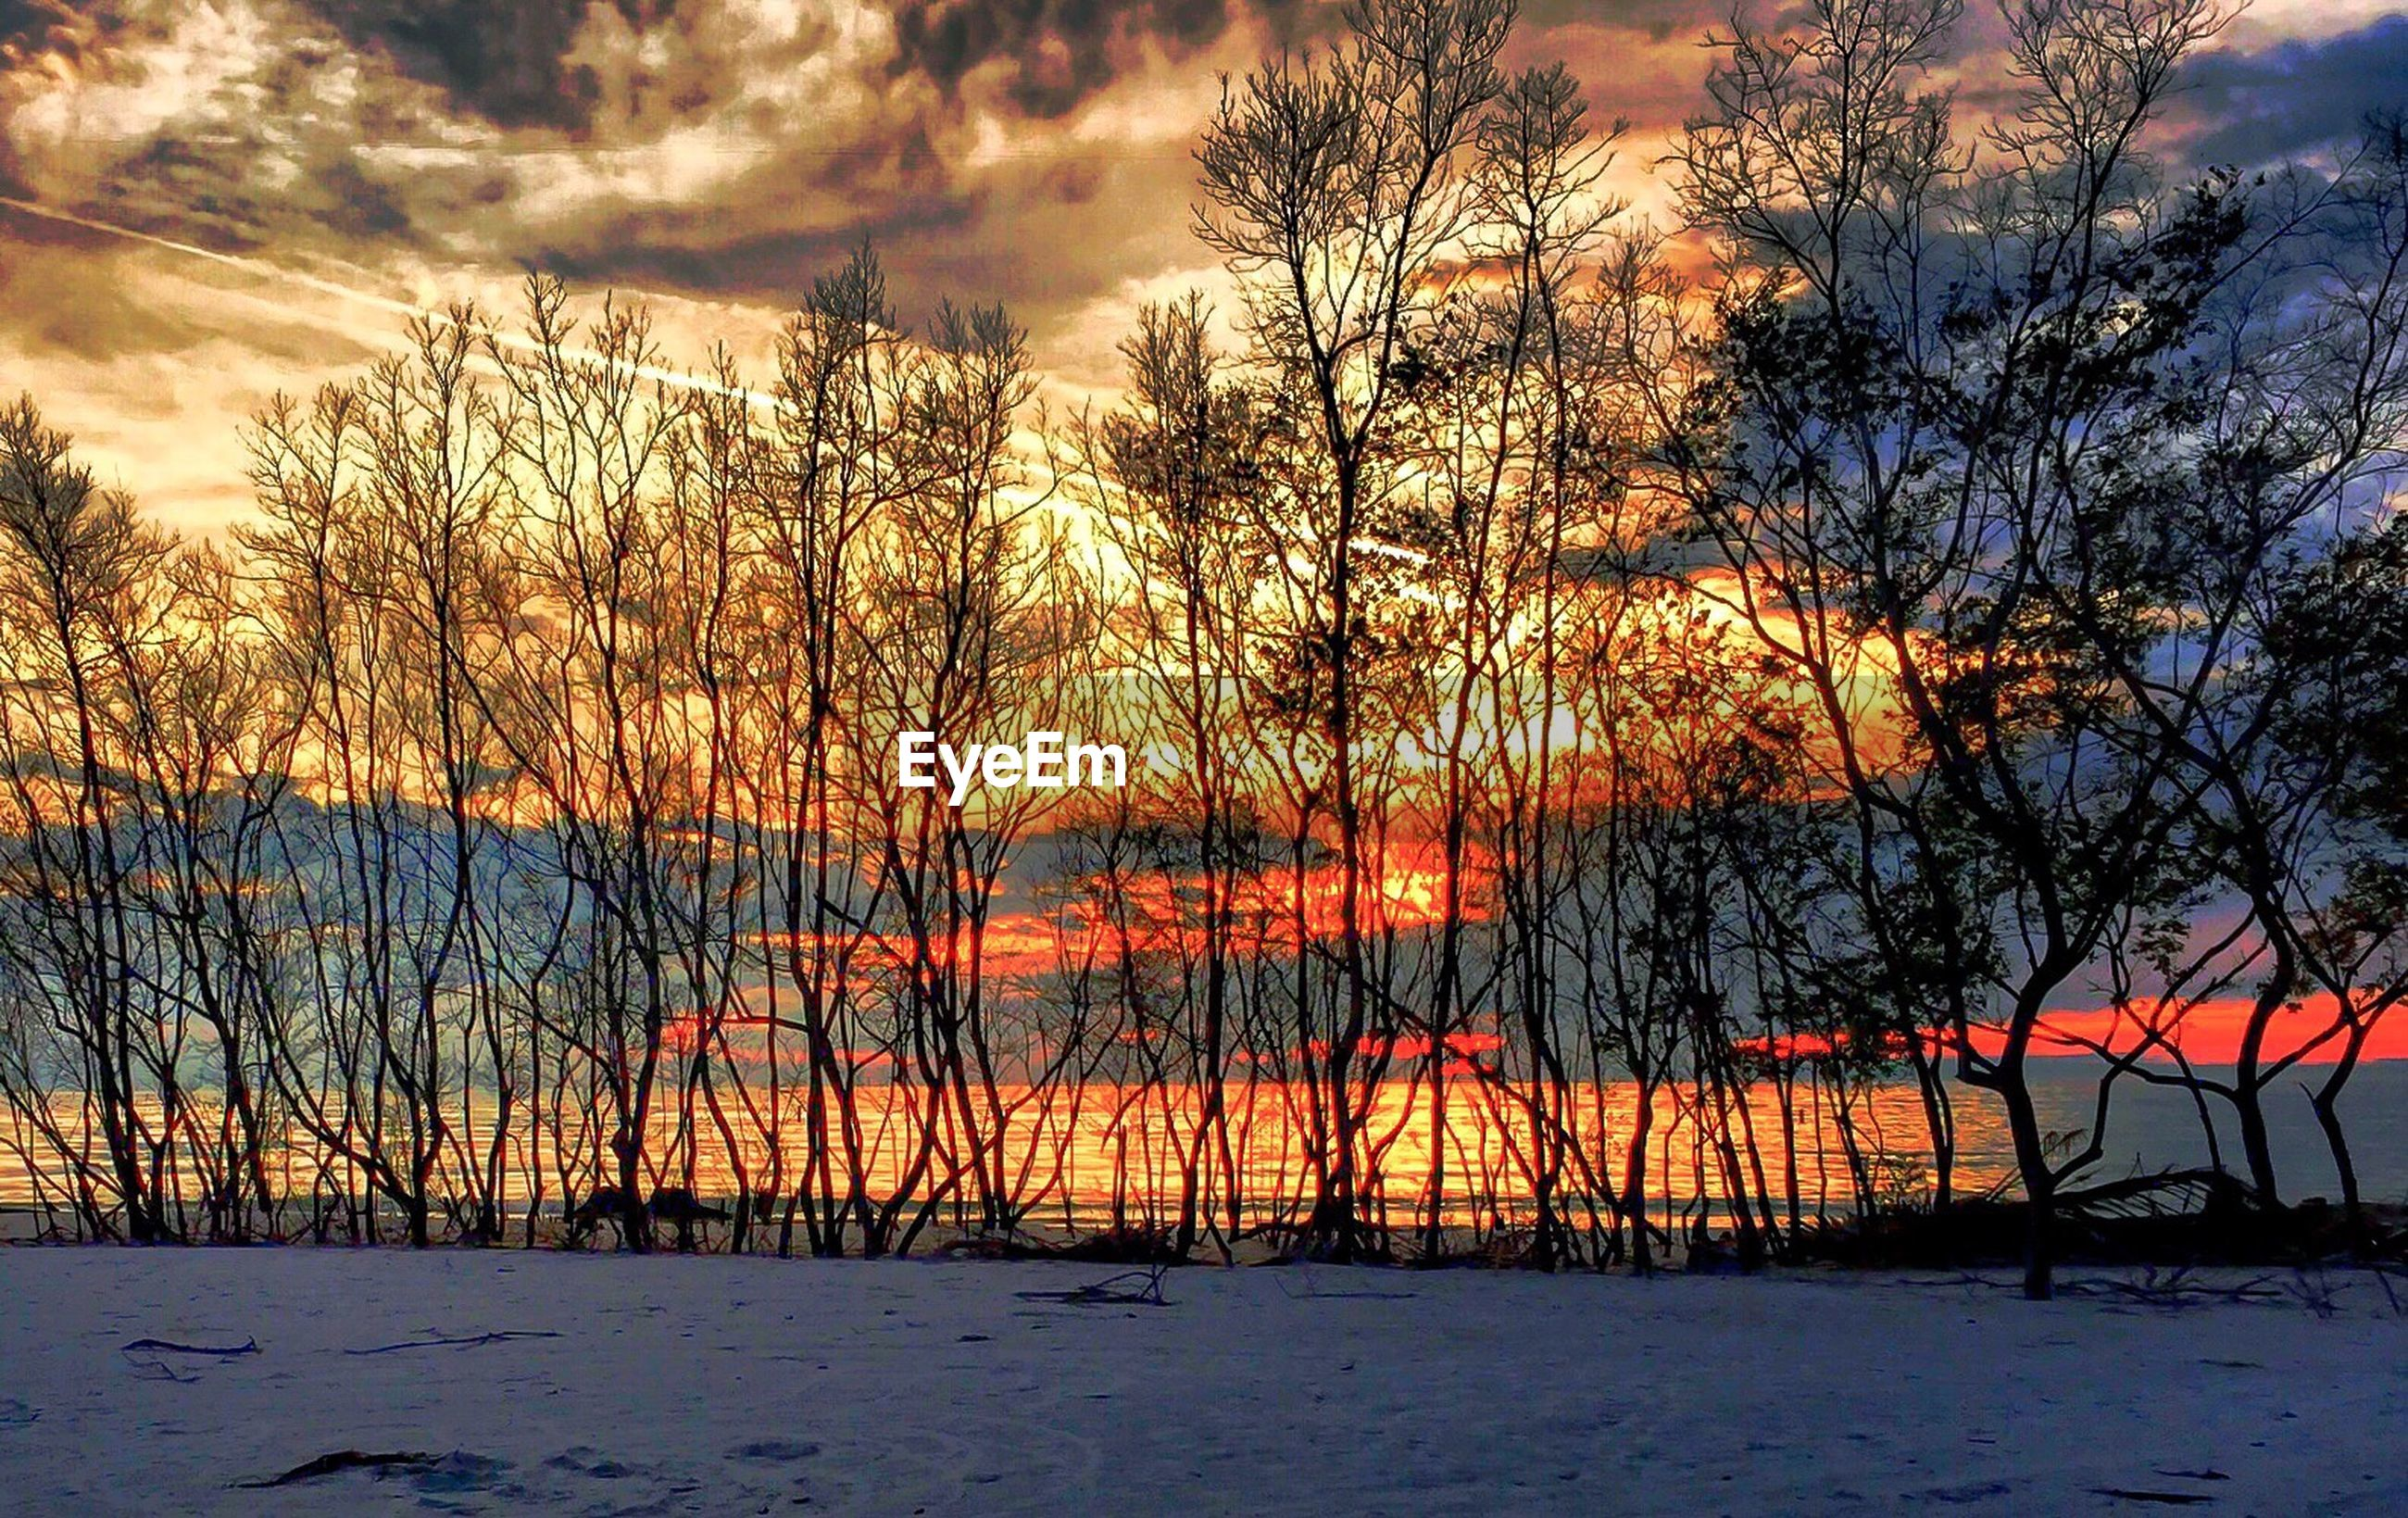 SCENIC VIEW OF TREES AGAINST SKY DURING SUNSET